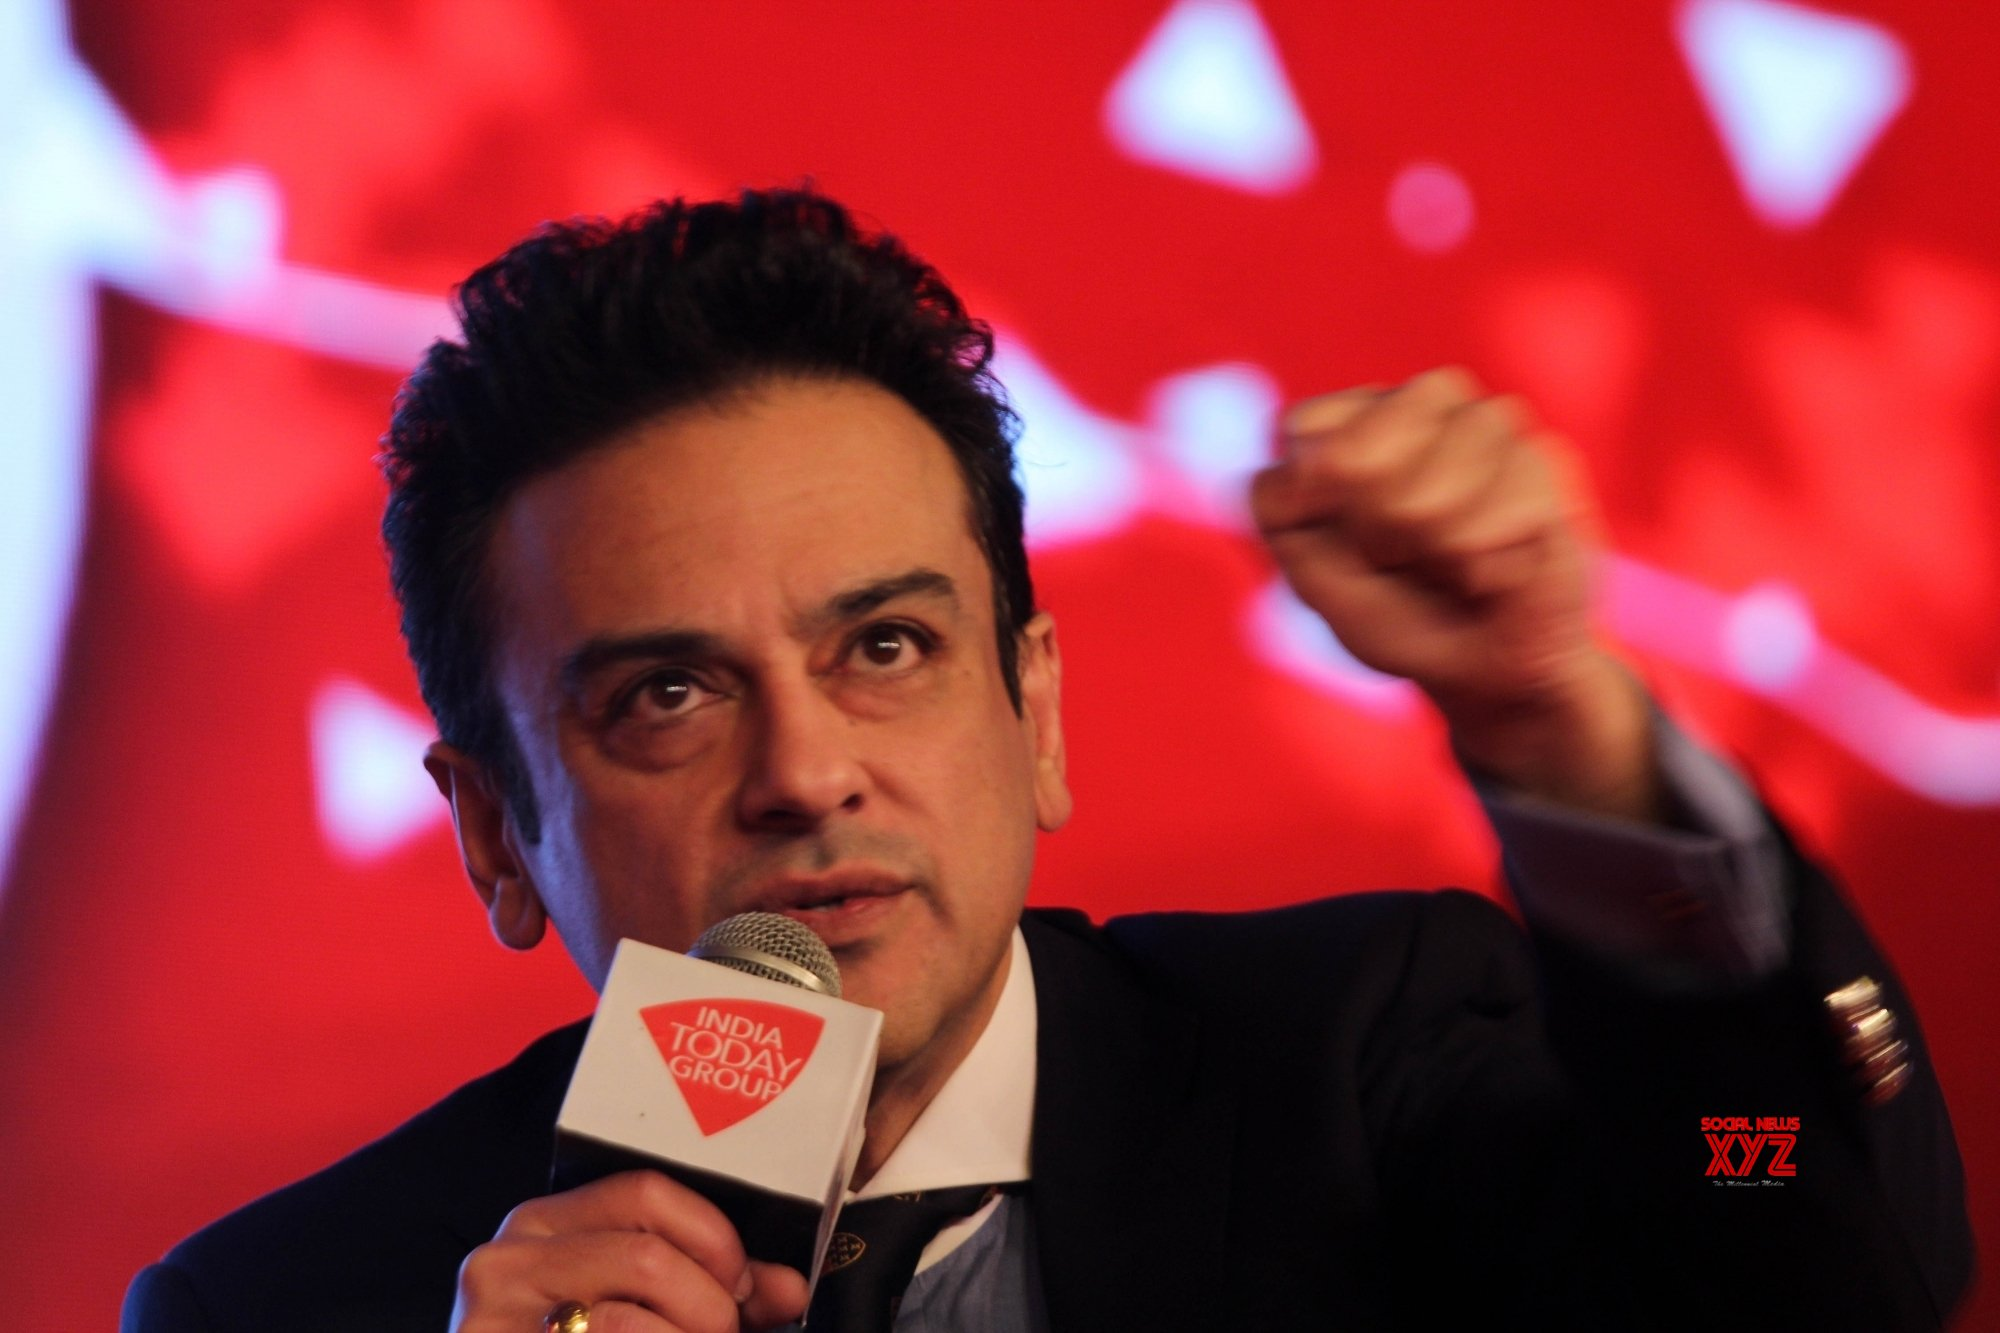 My father was born in India and died in India: Adnan Sami